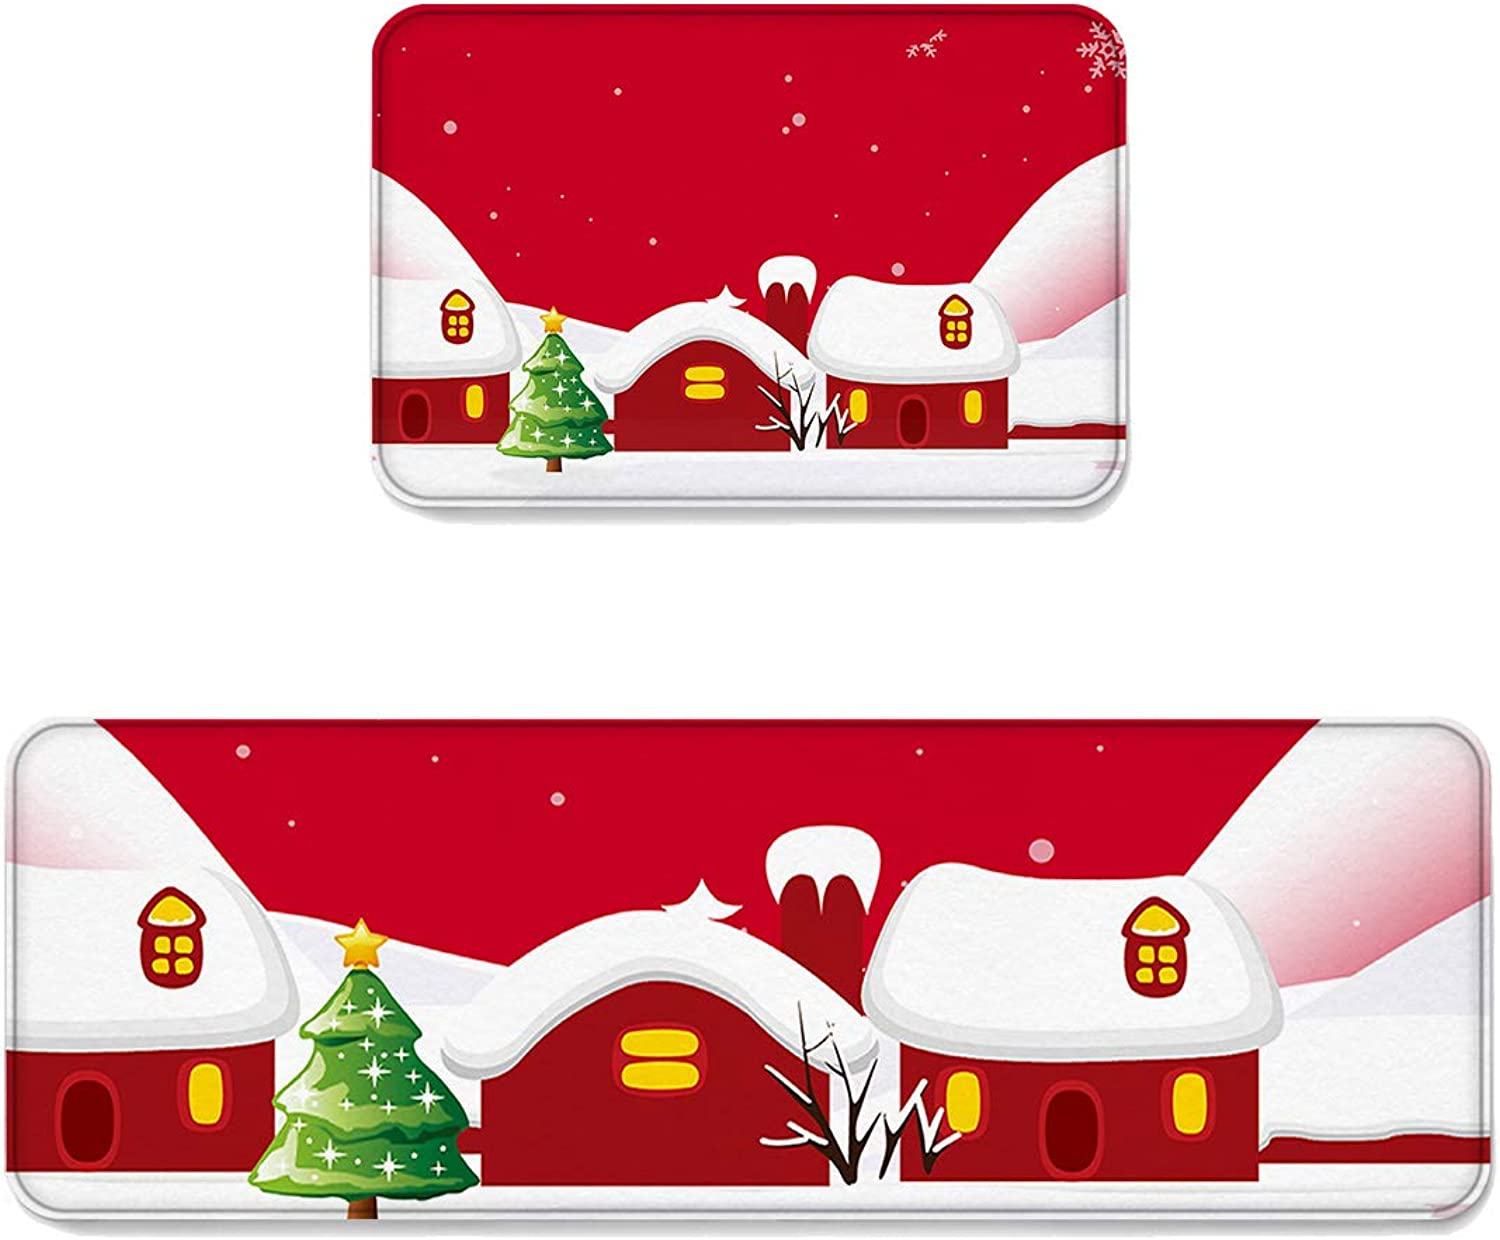 2 pcs Kitchen Mat Doormat Runner Rug Set, Kids Area Rug Bedroom Rug Non-Slip Rubber Backing Door Mats Merry Christmas Red Houses Covered by White Snow Design 19.7'' x 31.5'' + 19.7'' x 47.2''